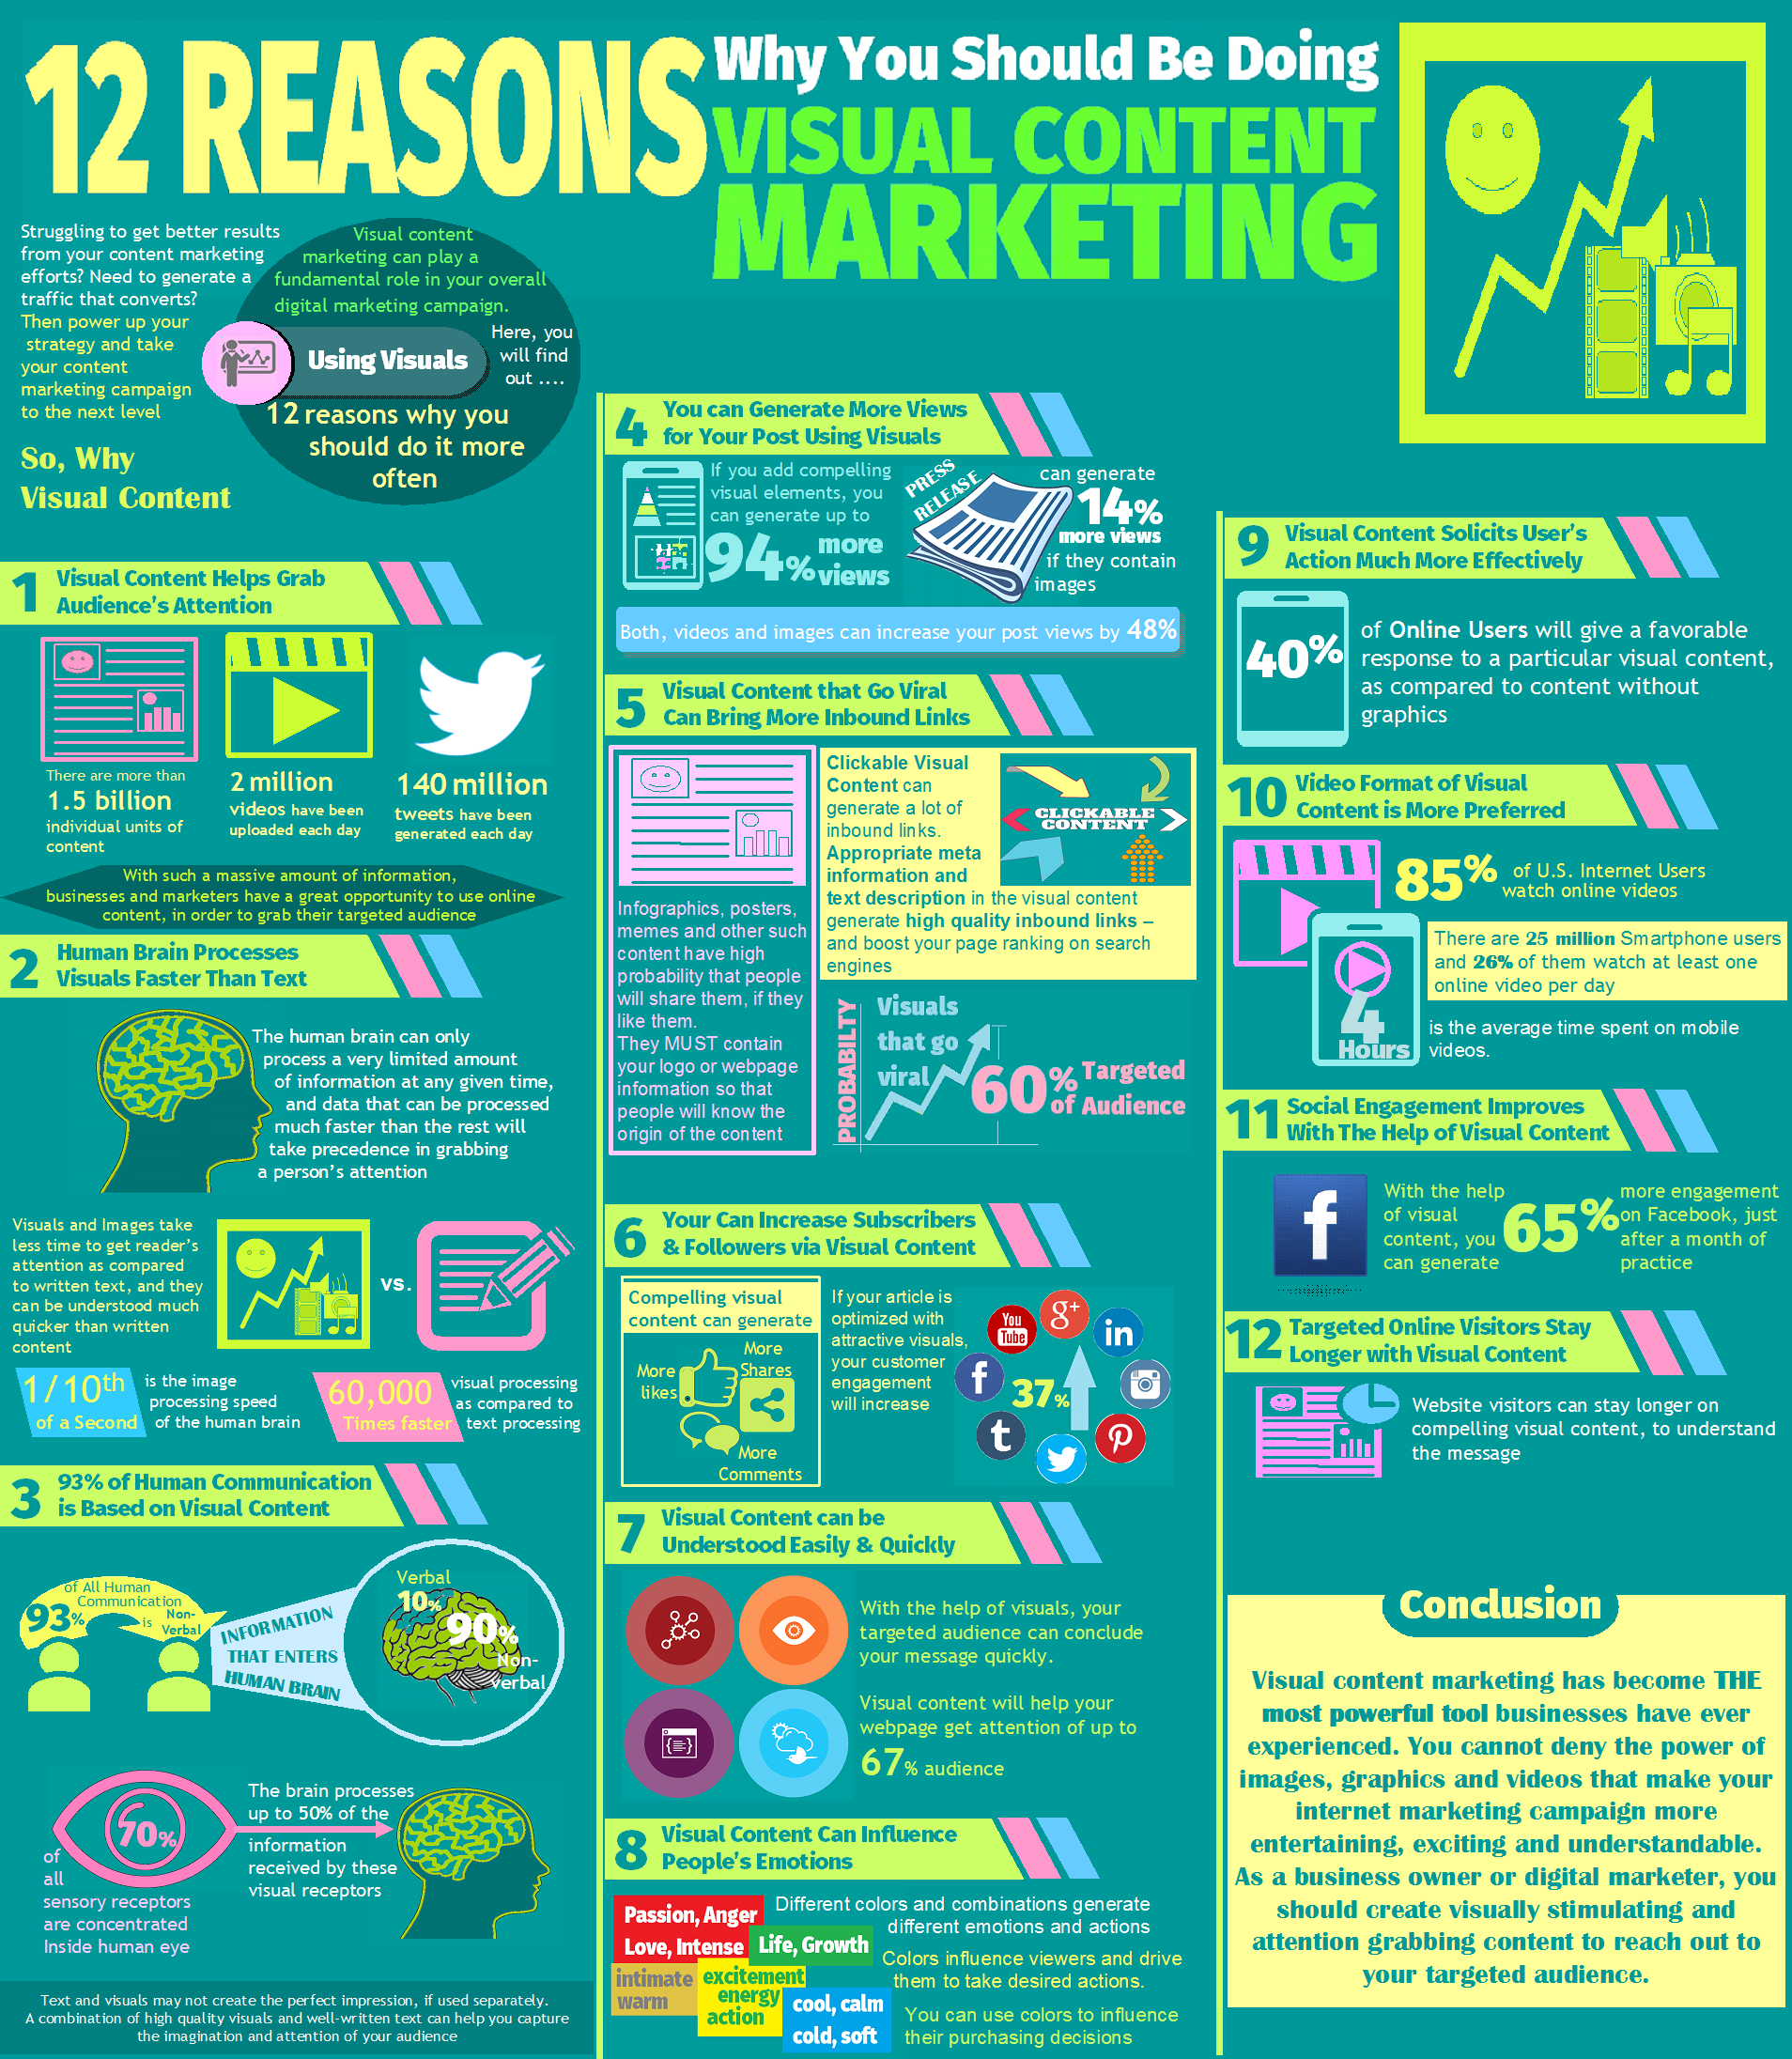 Infographic 12 reasons of visual content